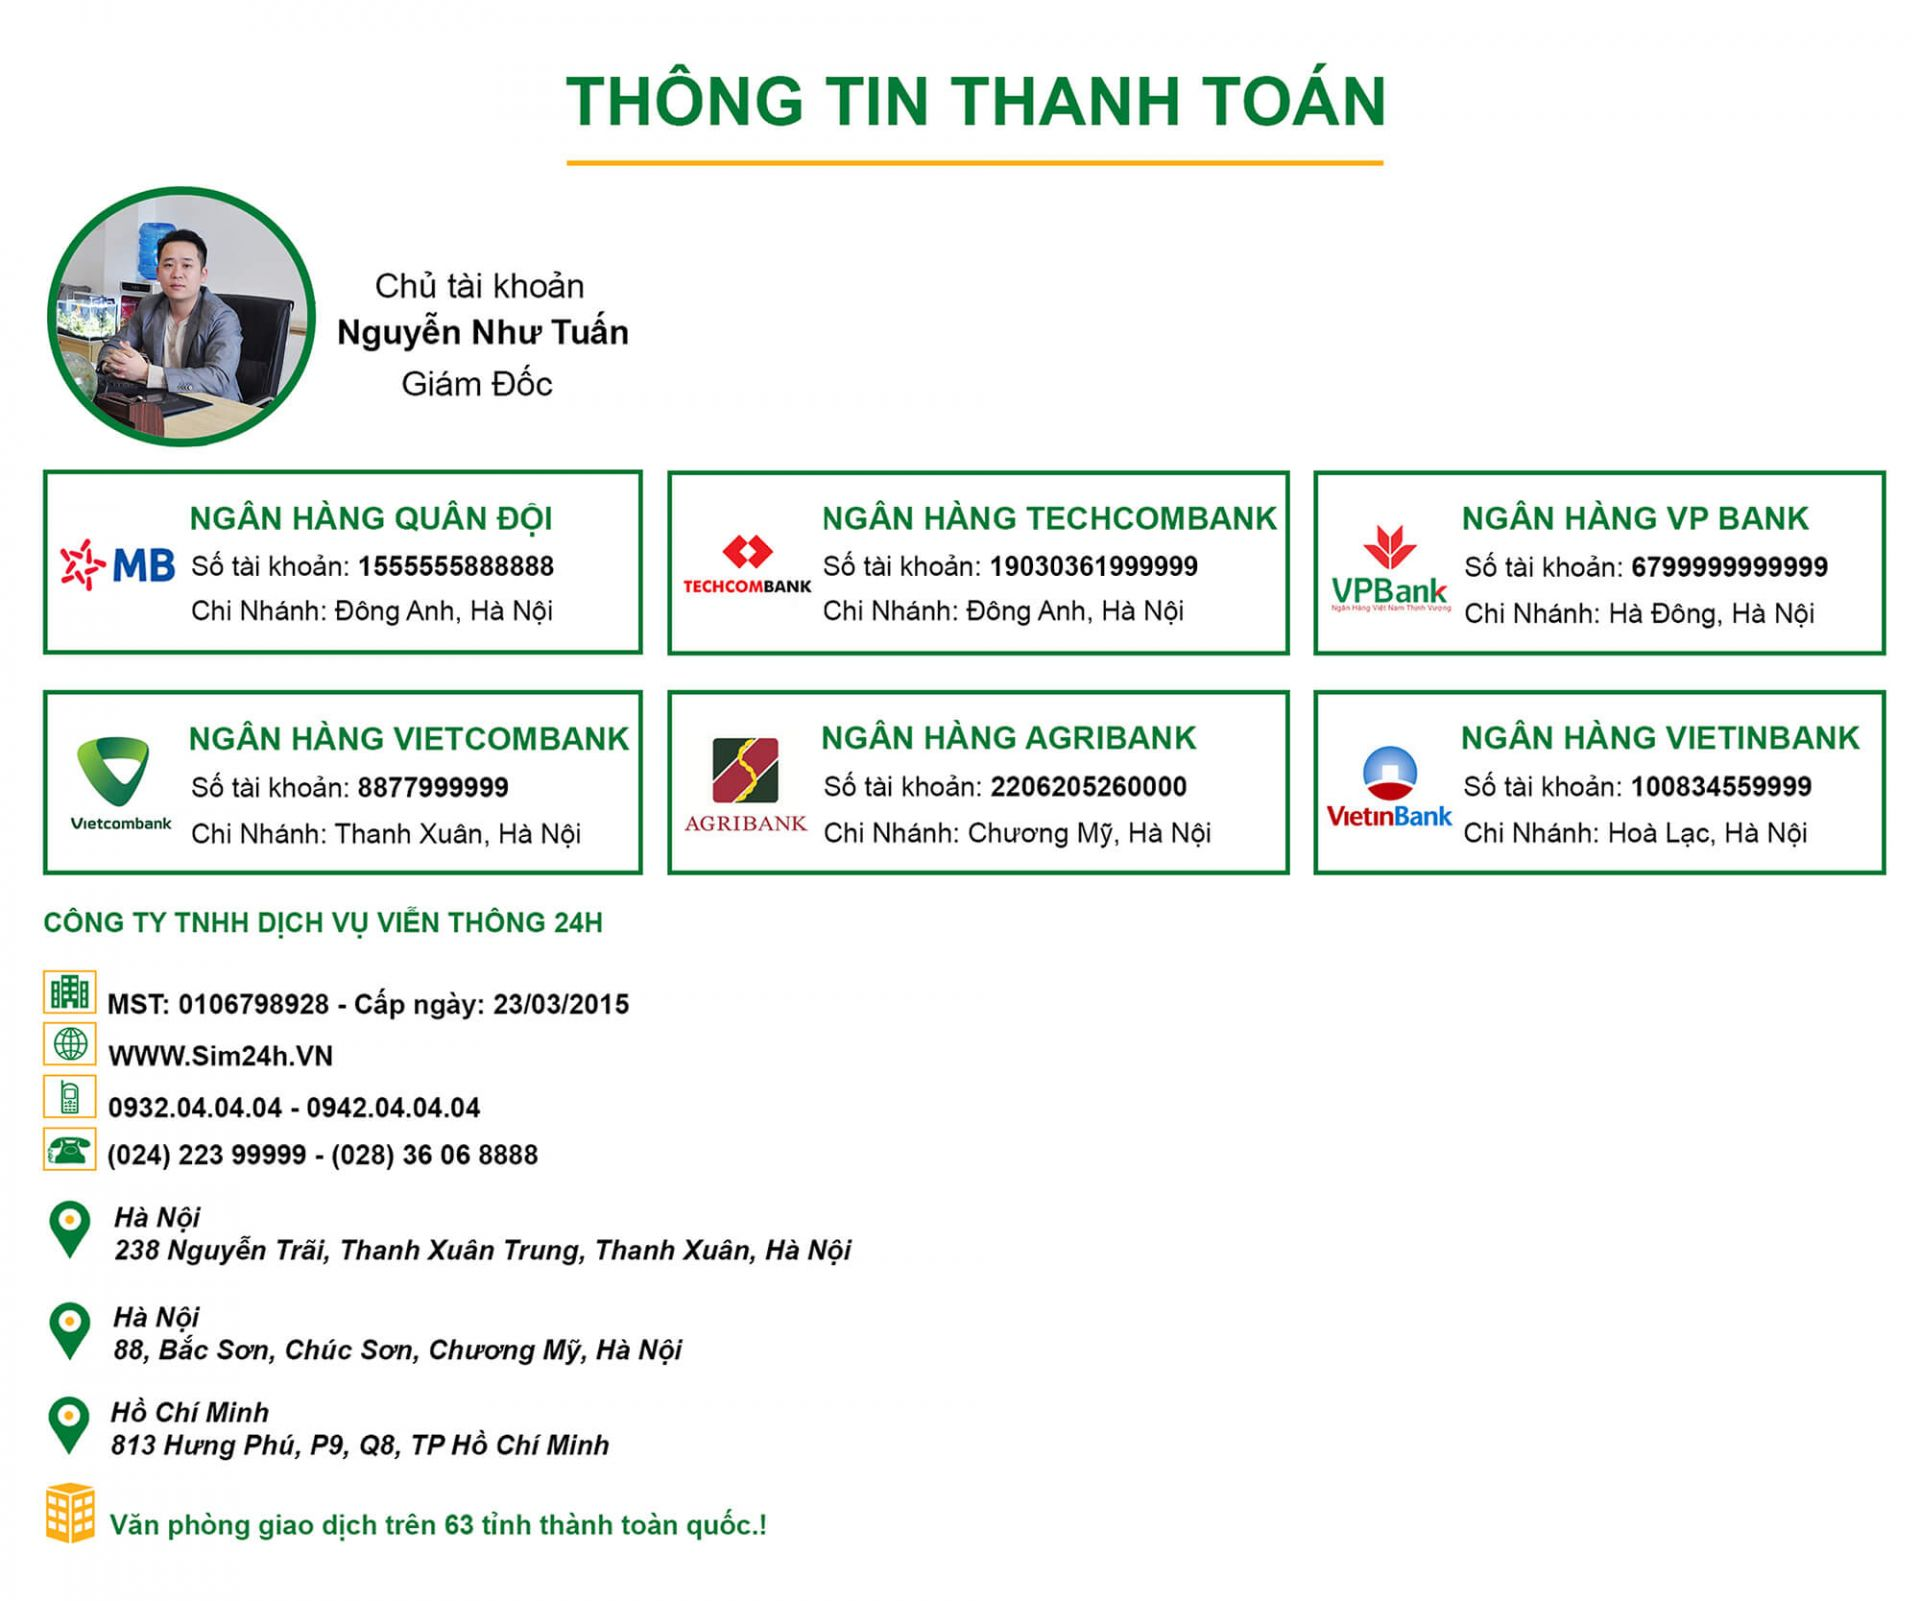 thanh-toan_2